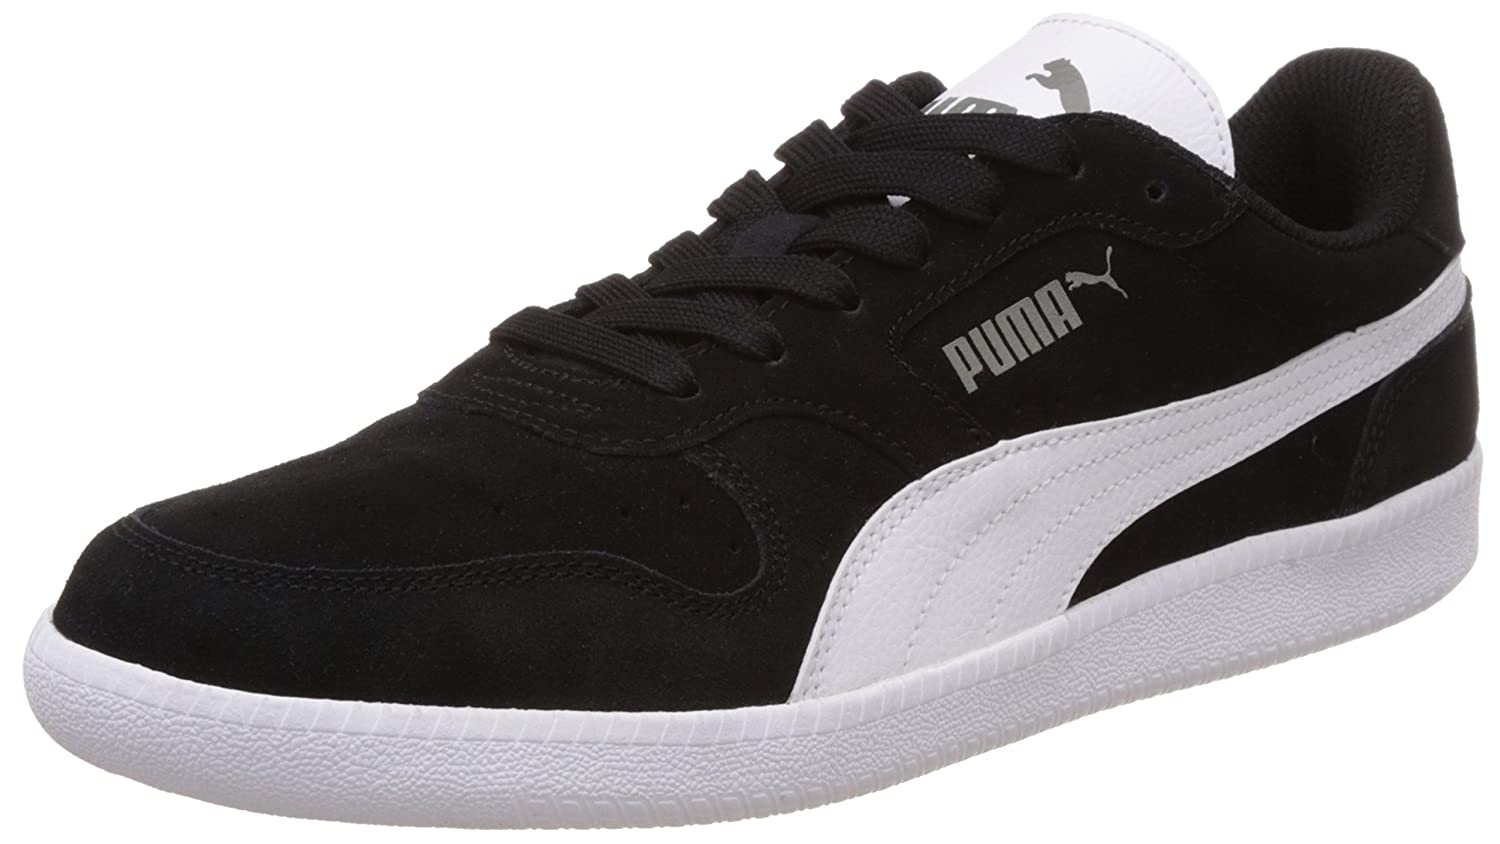 TALLA 43 EU. Puma ICRA Trainer SD-Black-White, Zapatillas Unisex Adulto